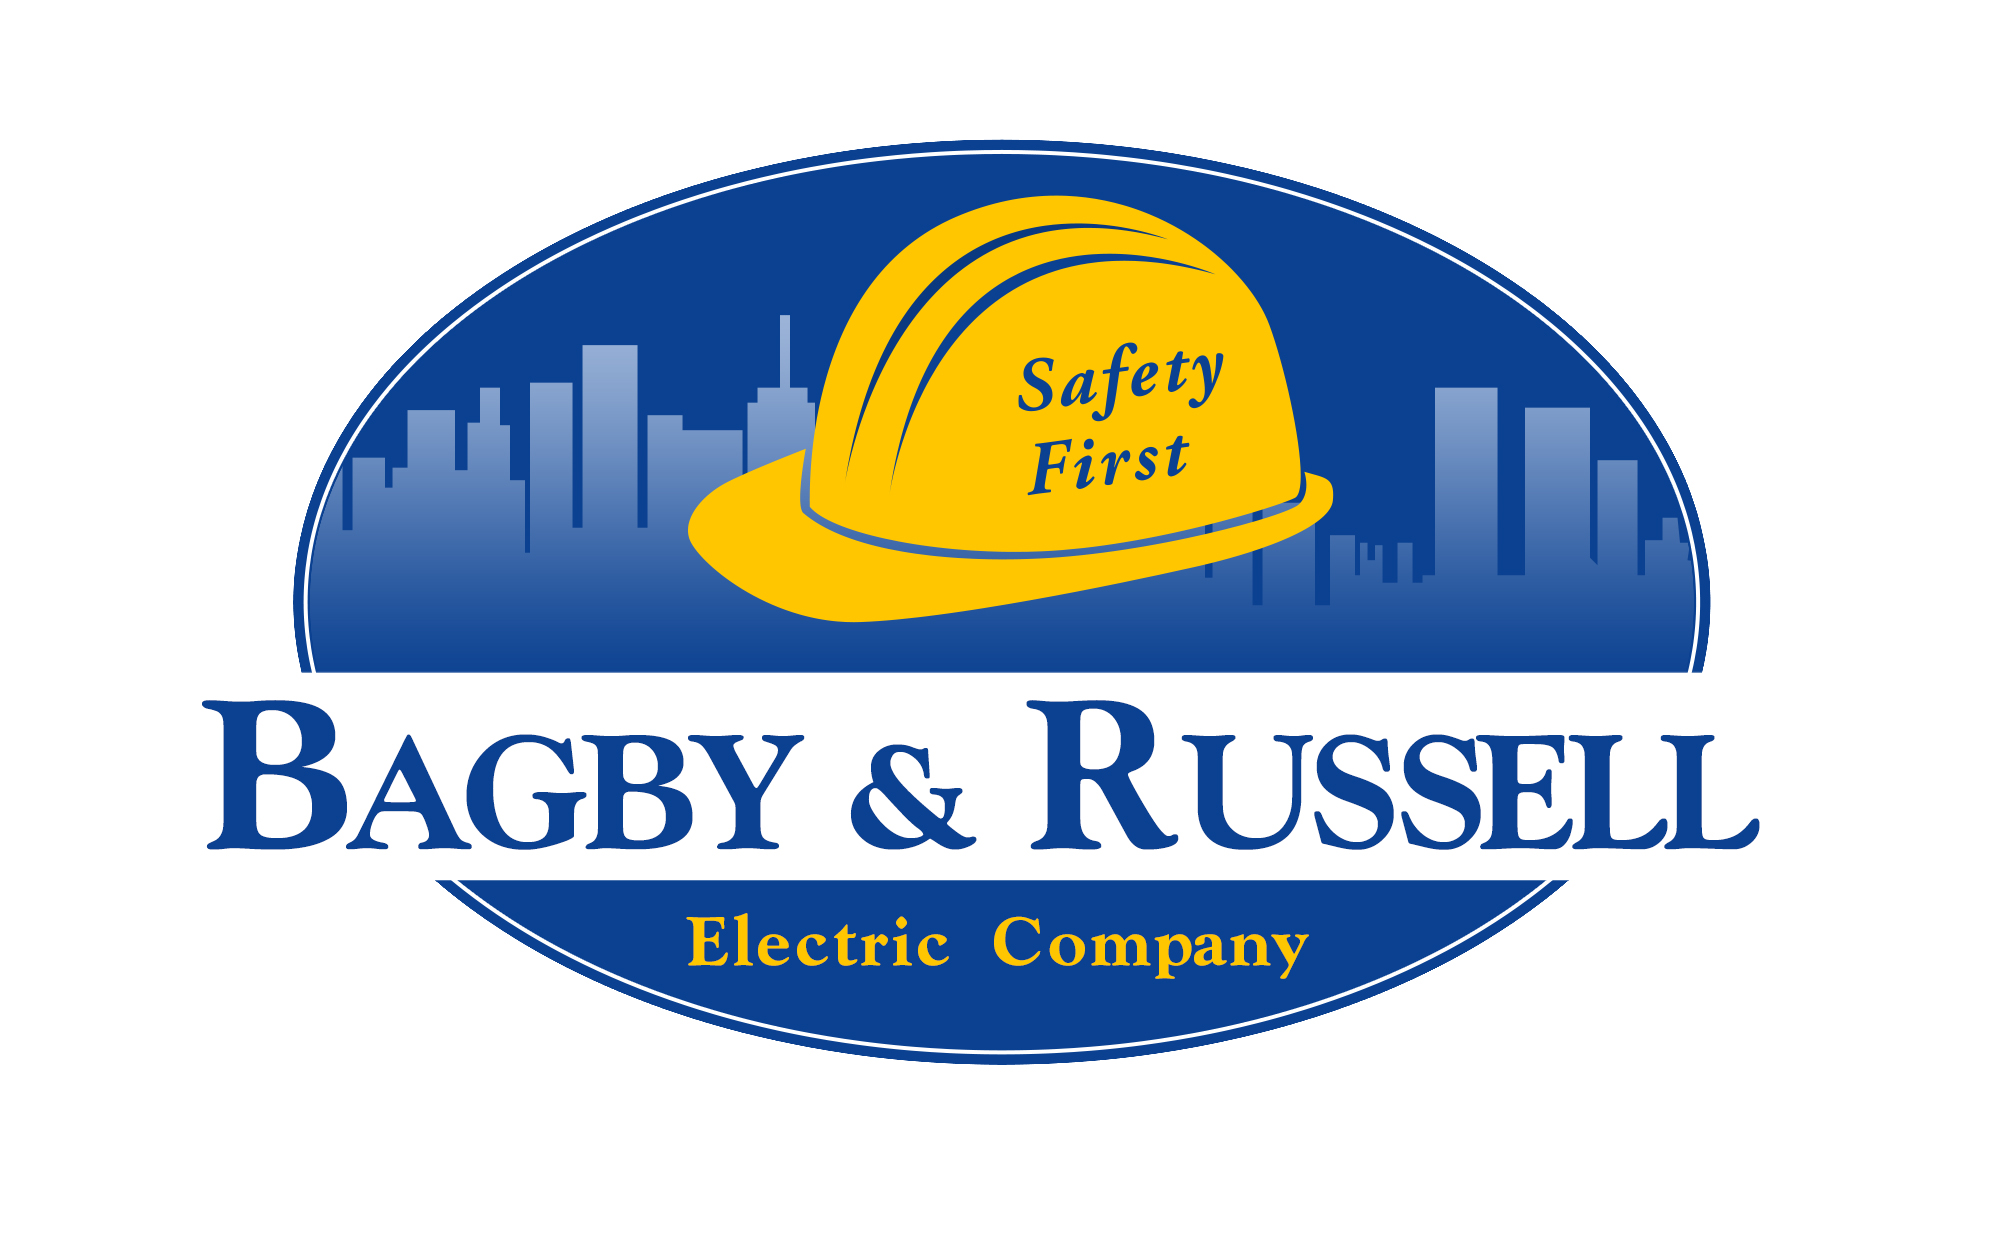 Bagby & Russell Electric Company